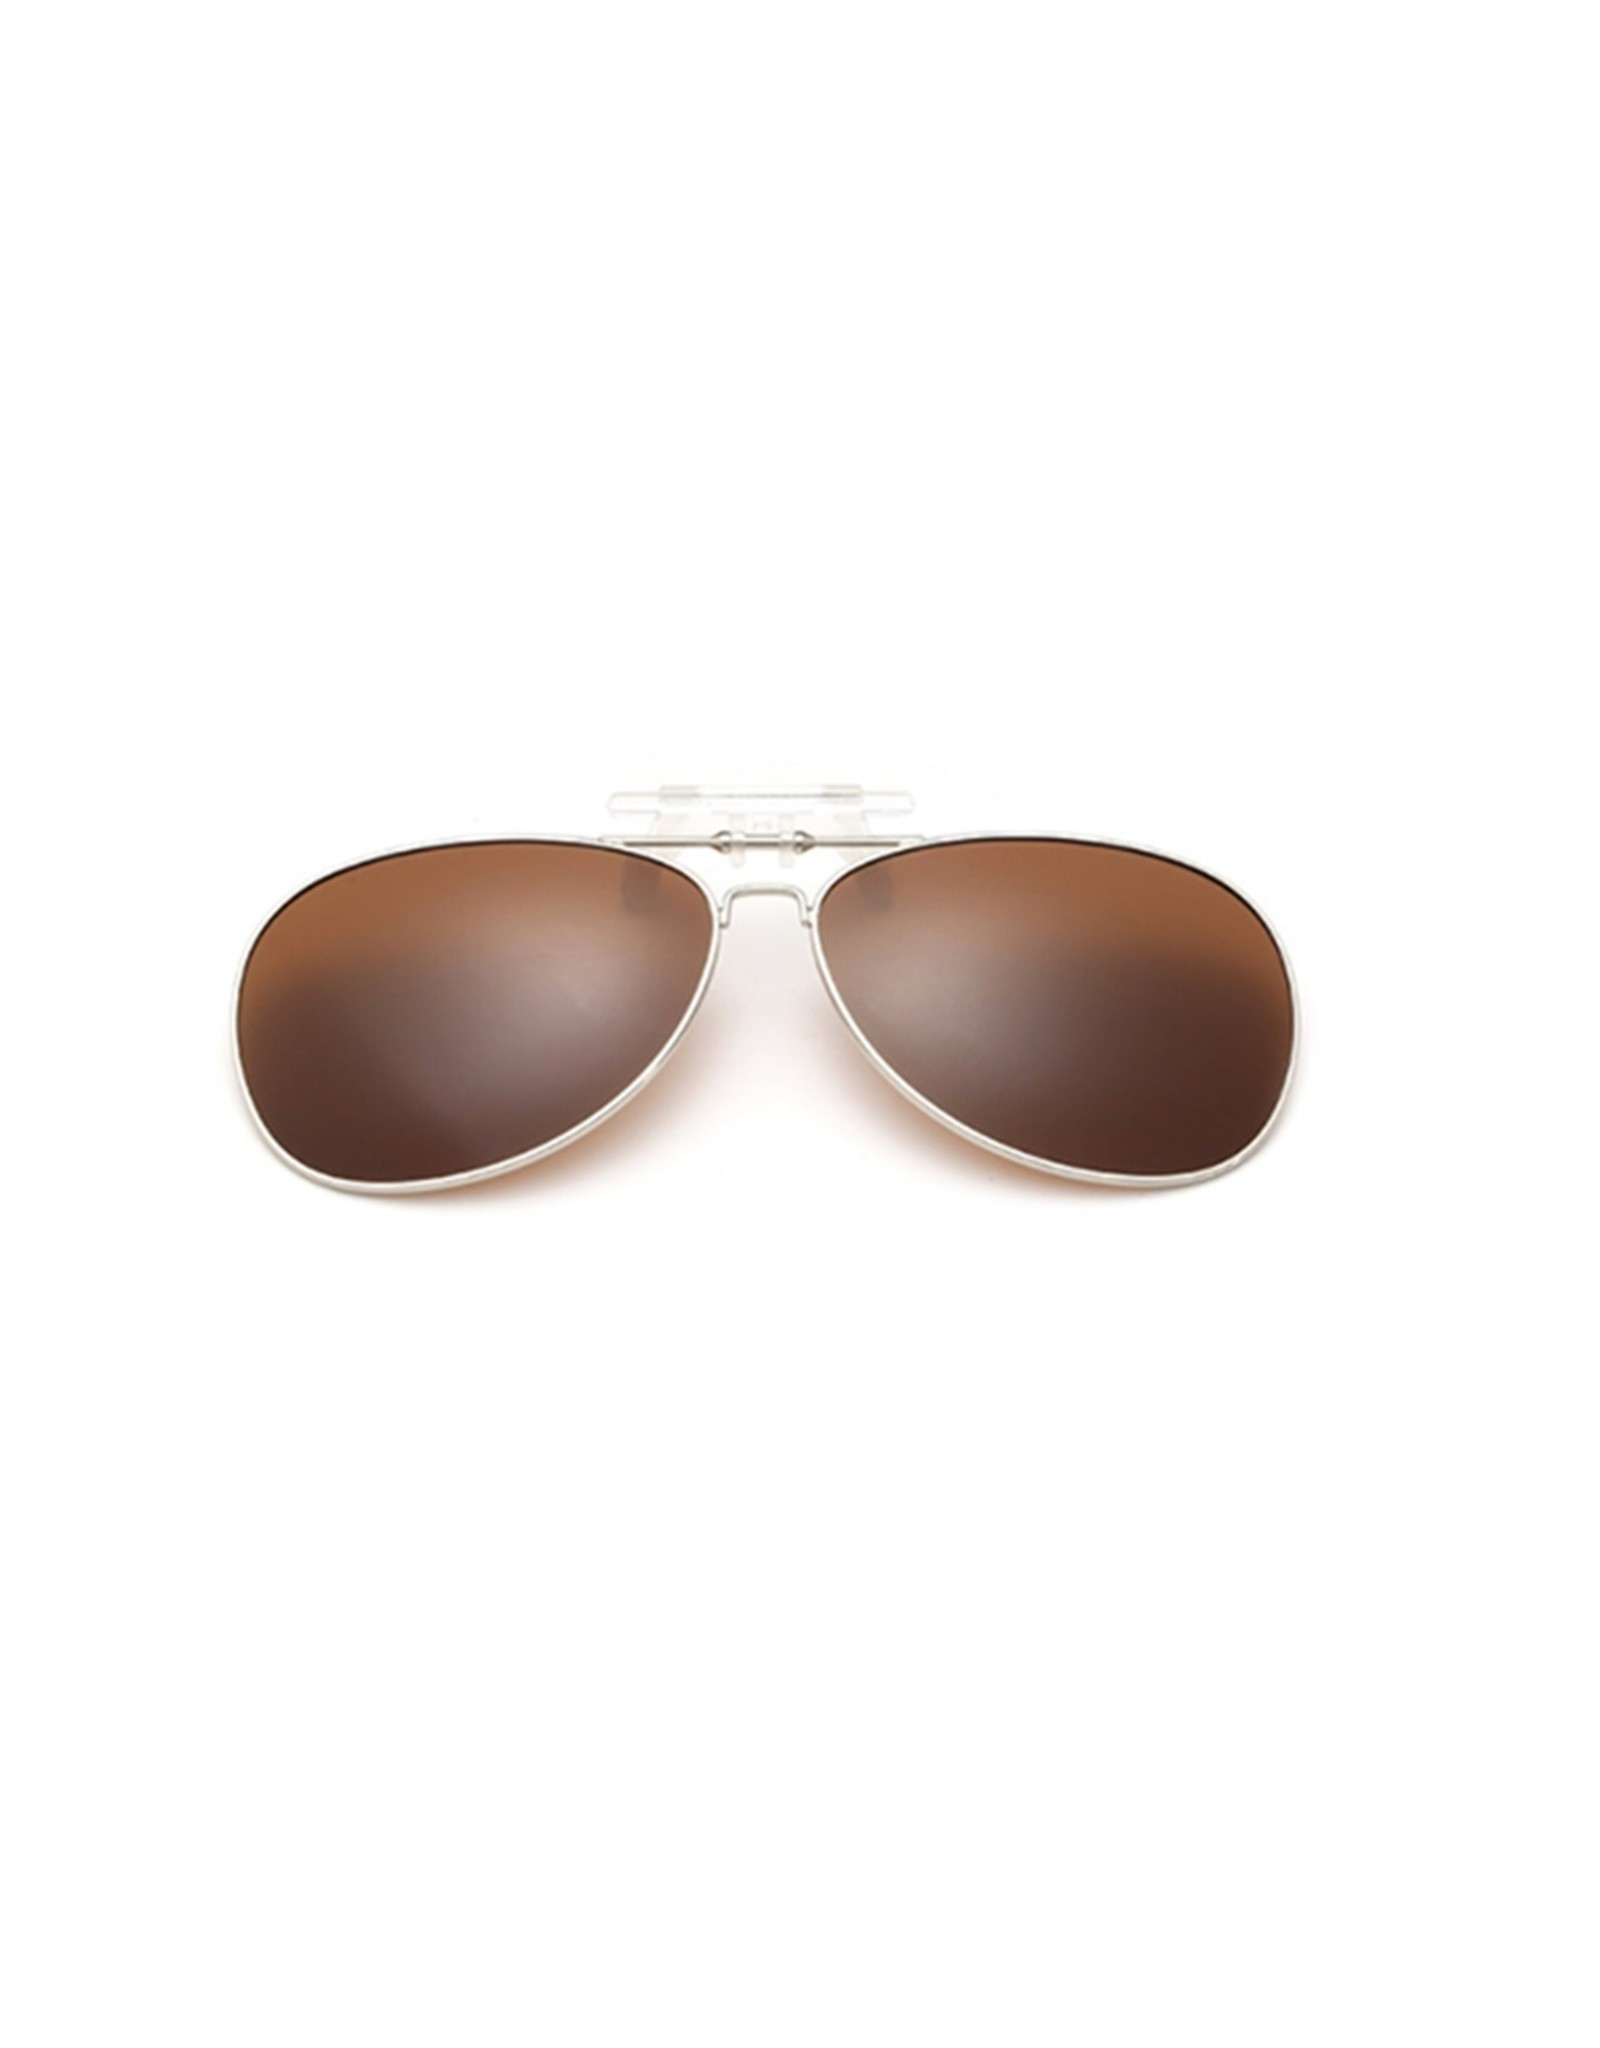 Parya Official  Clip-on sunglasses new 2019